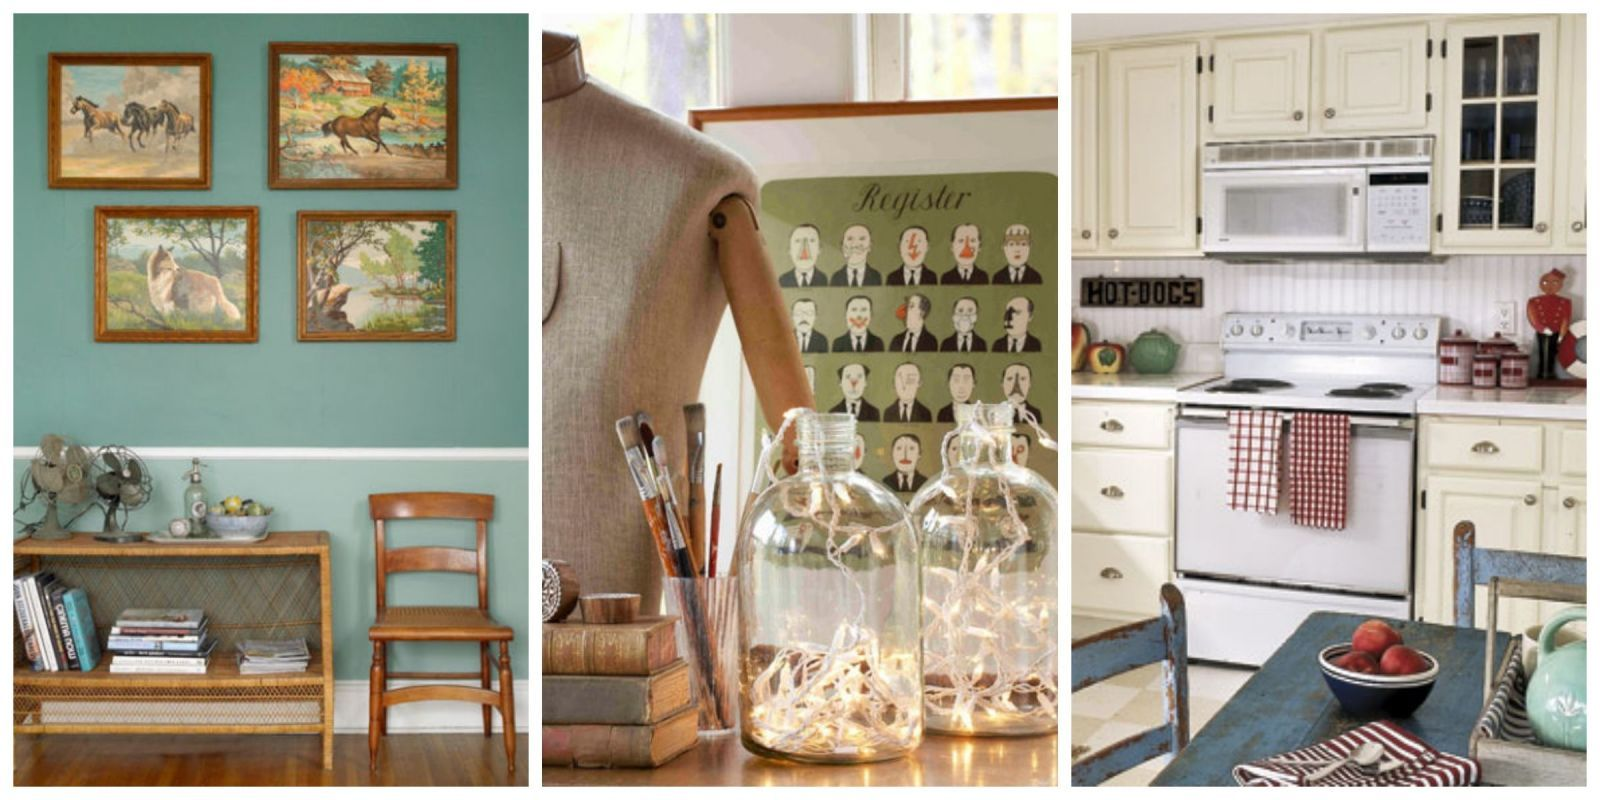 38 Budget Friendly Home Decorating Ideas 38 Budget Friendly